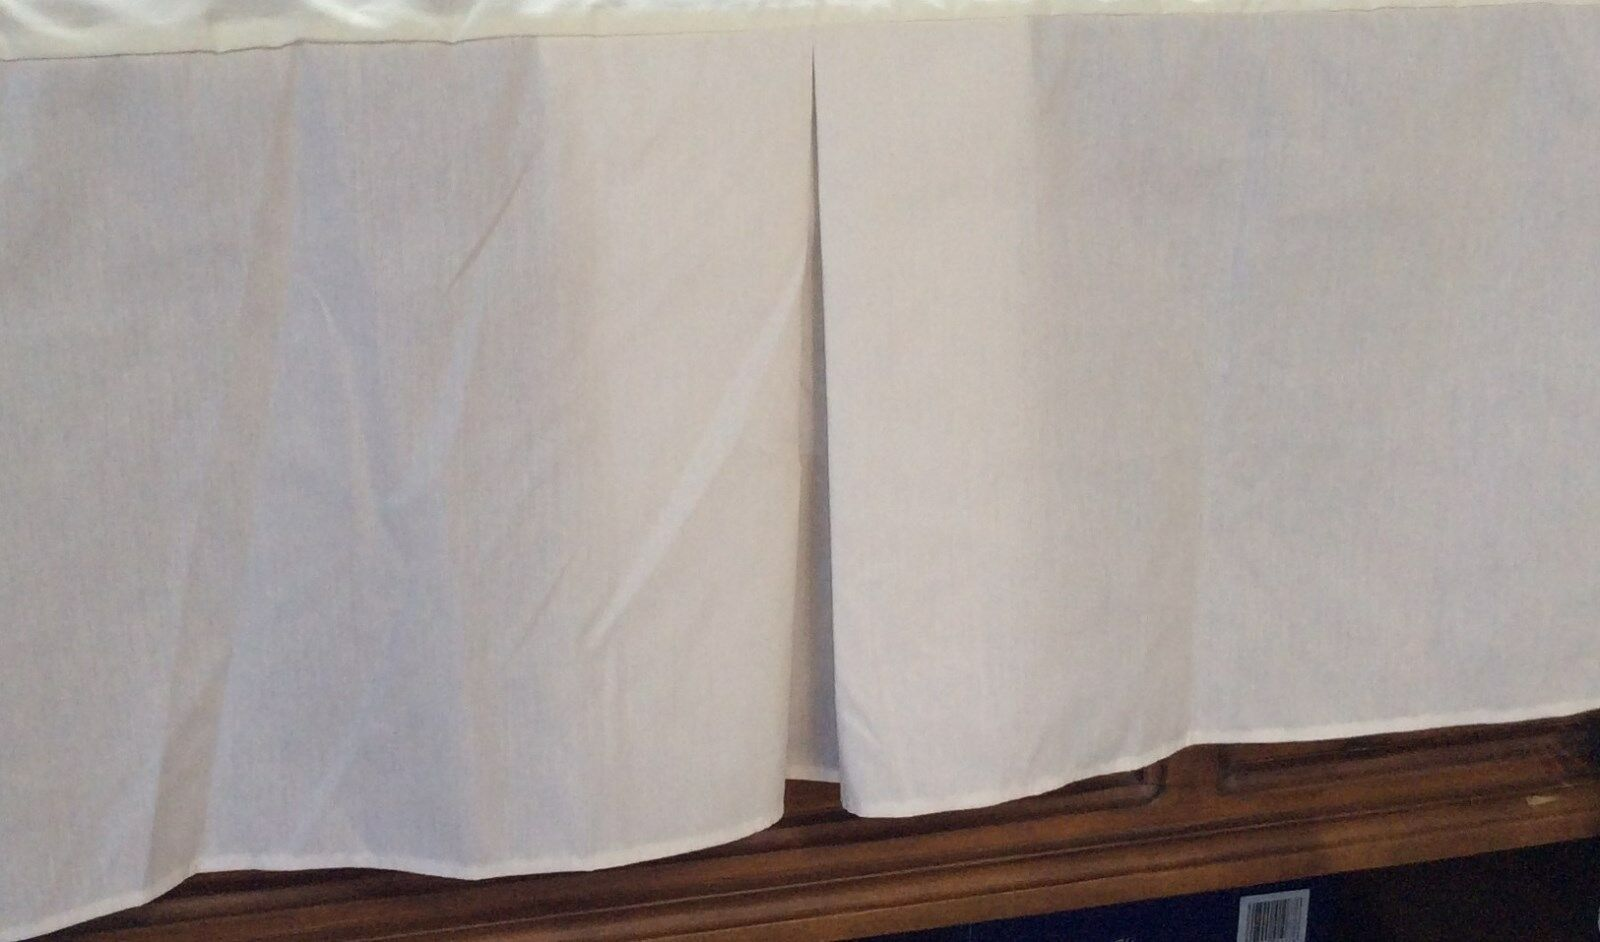 Queen size Dust Ruffle - Ruffled or Tailored - ECRU IVORY 14 , 18, 21  drops